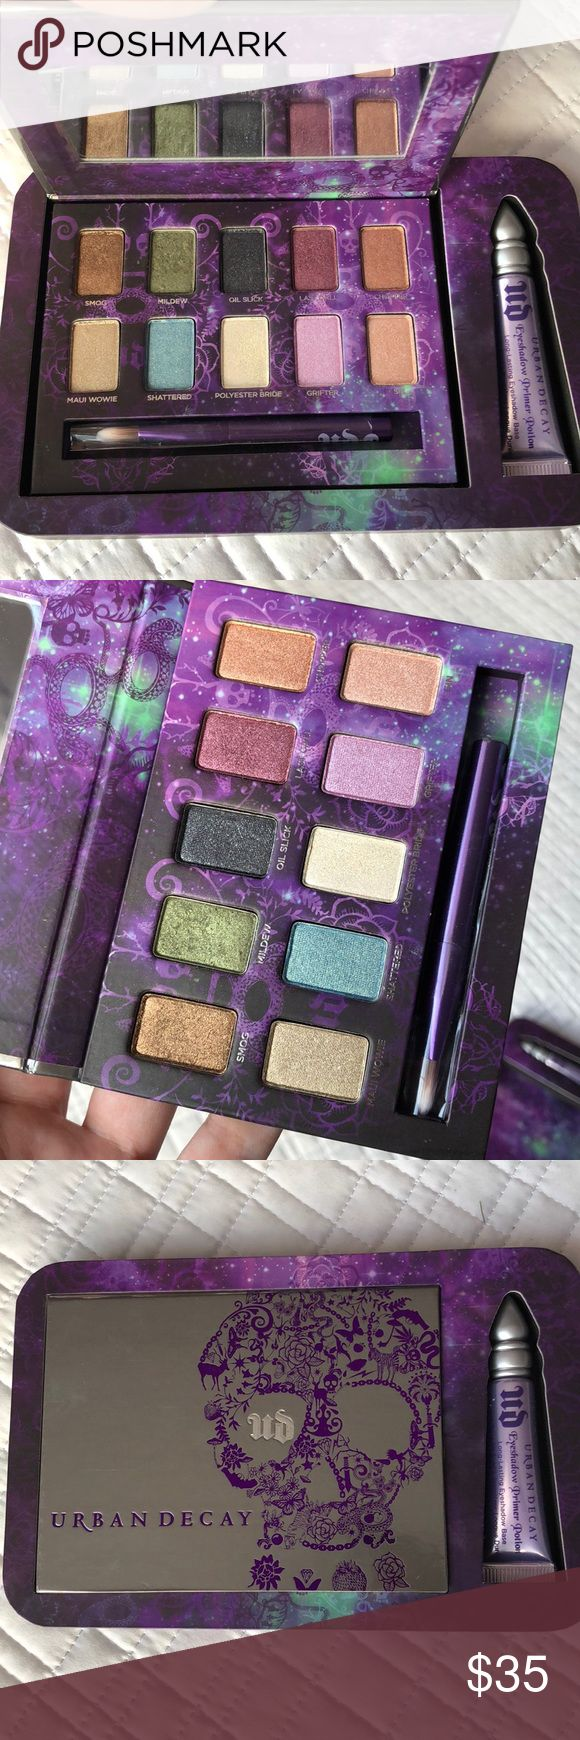 NWT Urban Decay Ammo Palette Brand new! Green was swatched once. Primer included also never used. Brush and mirror still in plastic. Also have the clear box it came in! Urban Decay Makeup Eyeshadow